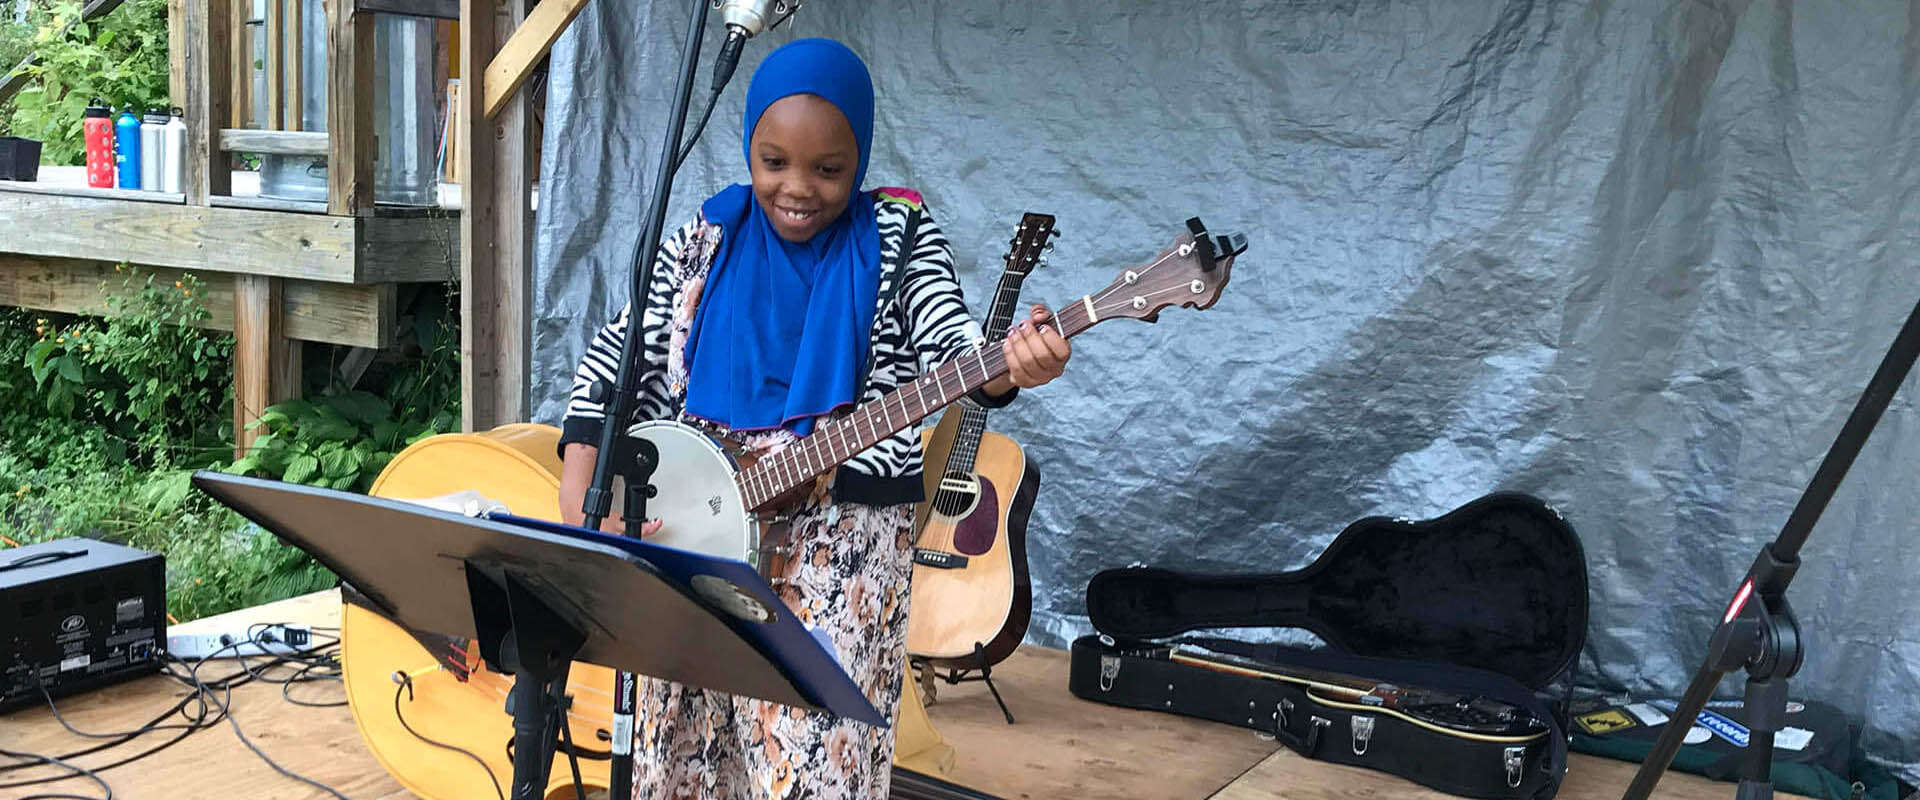 A Somali Bantu girl playing banjo on stage